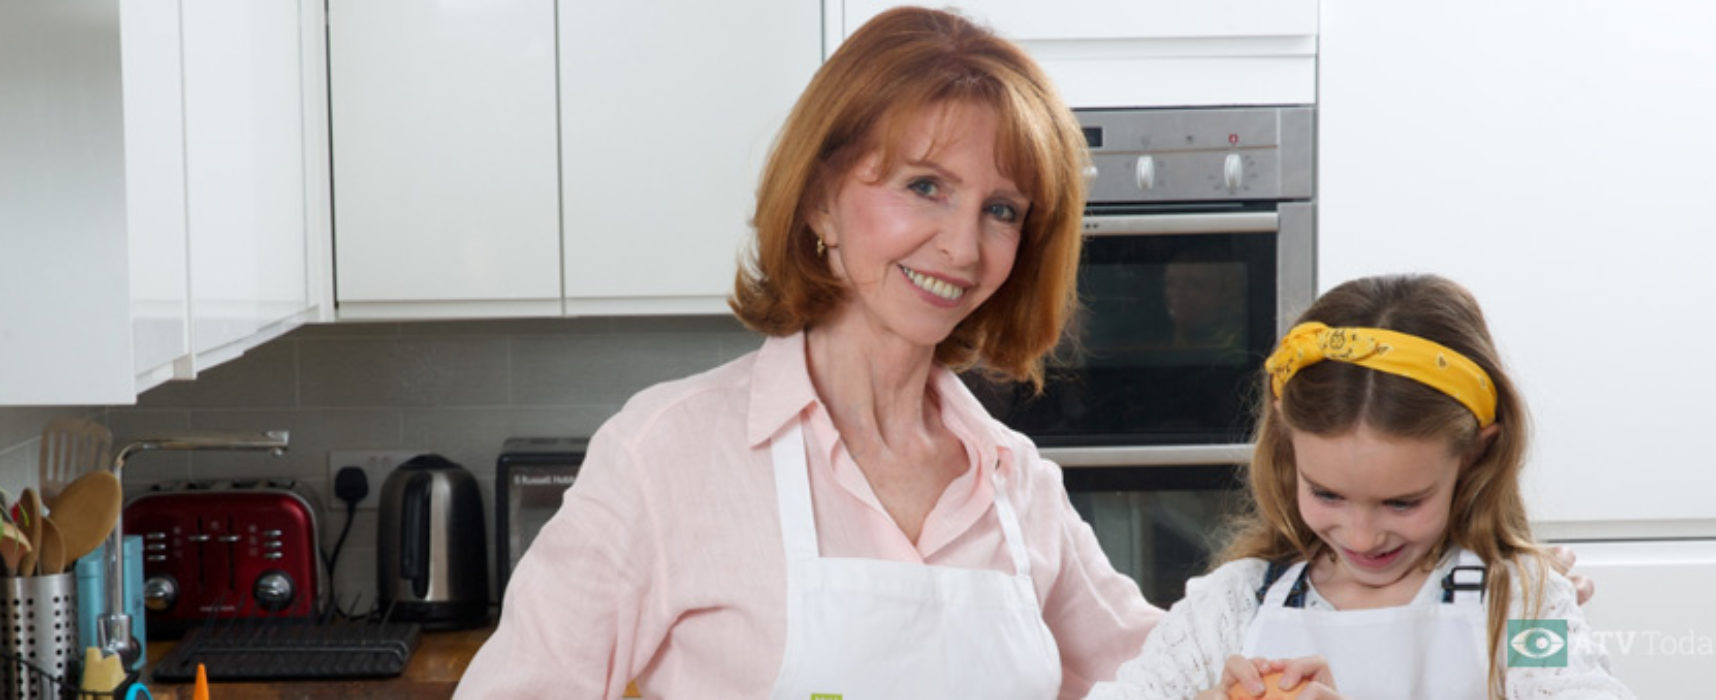 Jane Asher snowman recipe for Barnardo's Kidsmas fundraising campaign launched